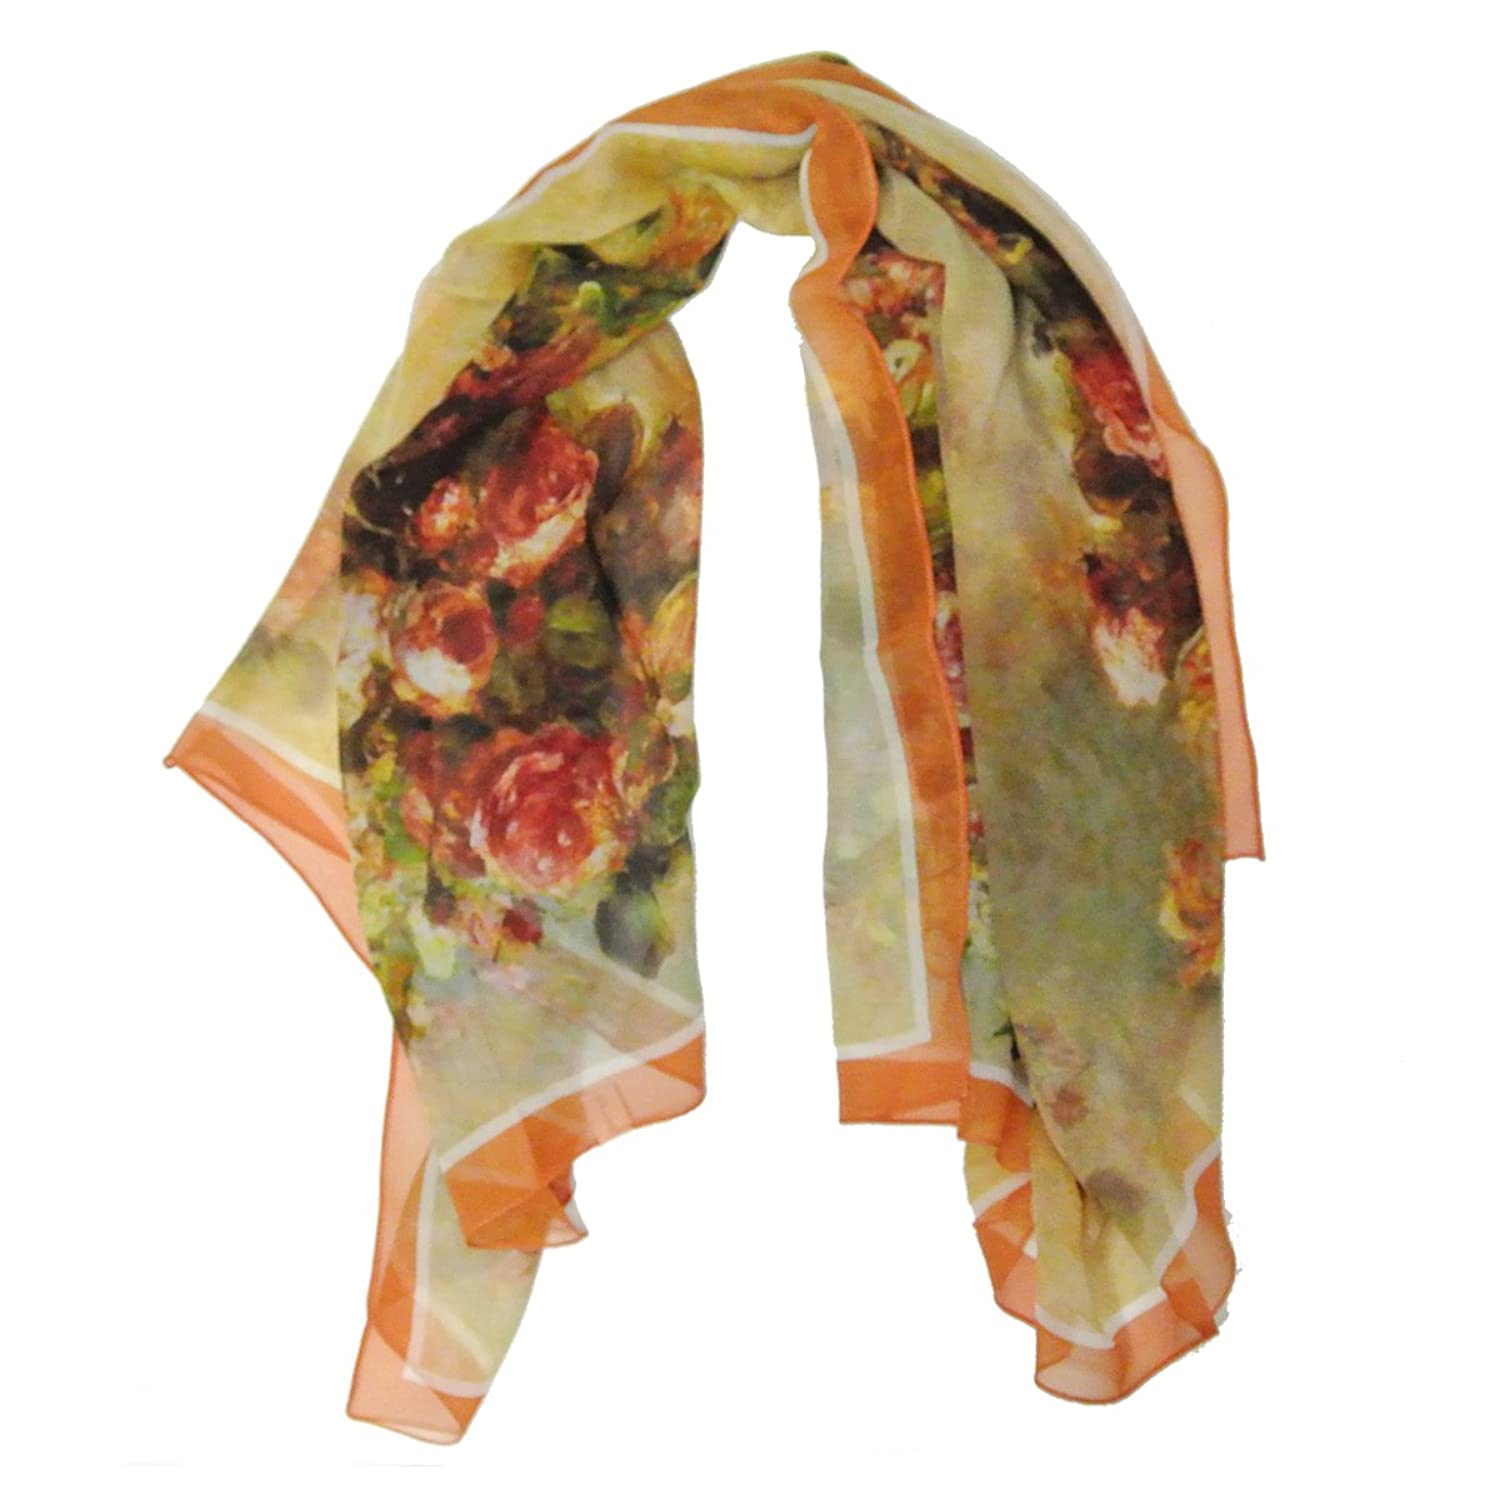 Allydrew 100% Mulberry Silk Floral Painting Square Scarf, Red Roses on Orange